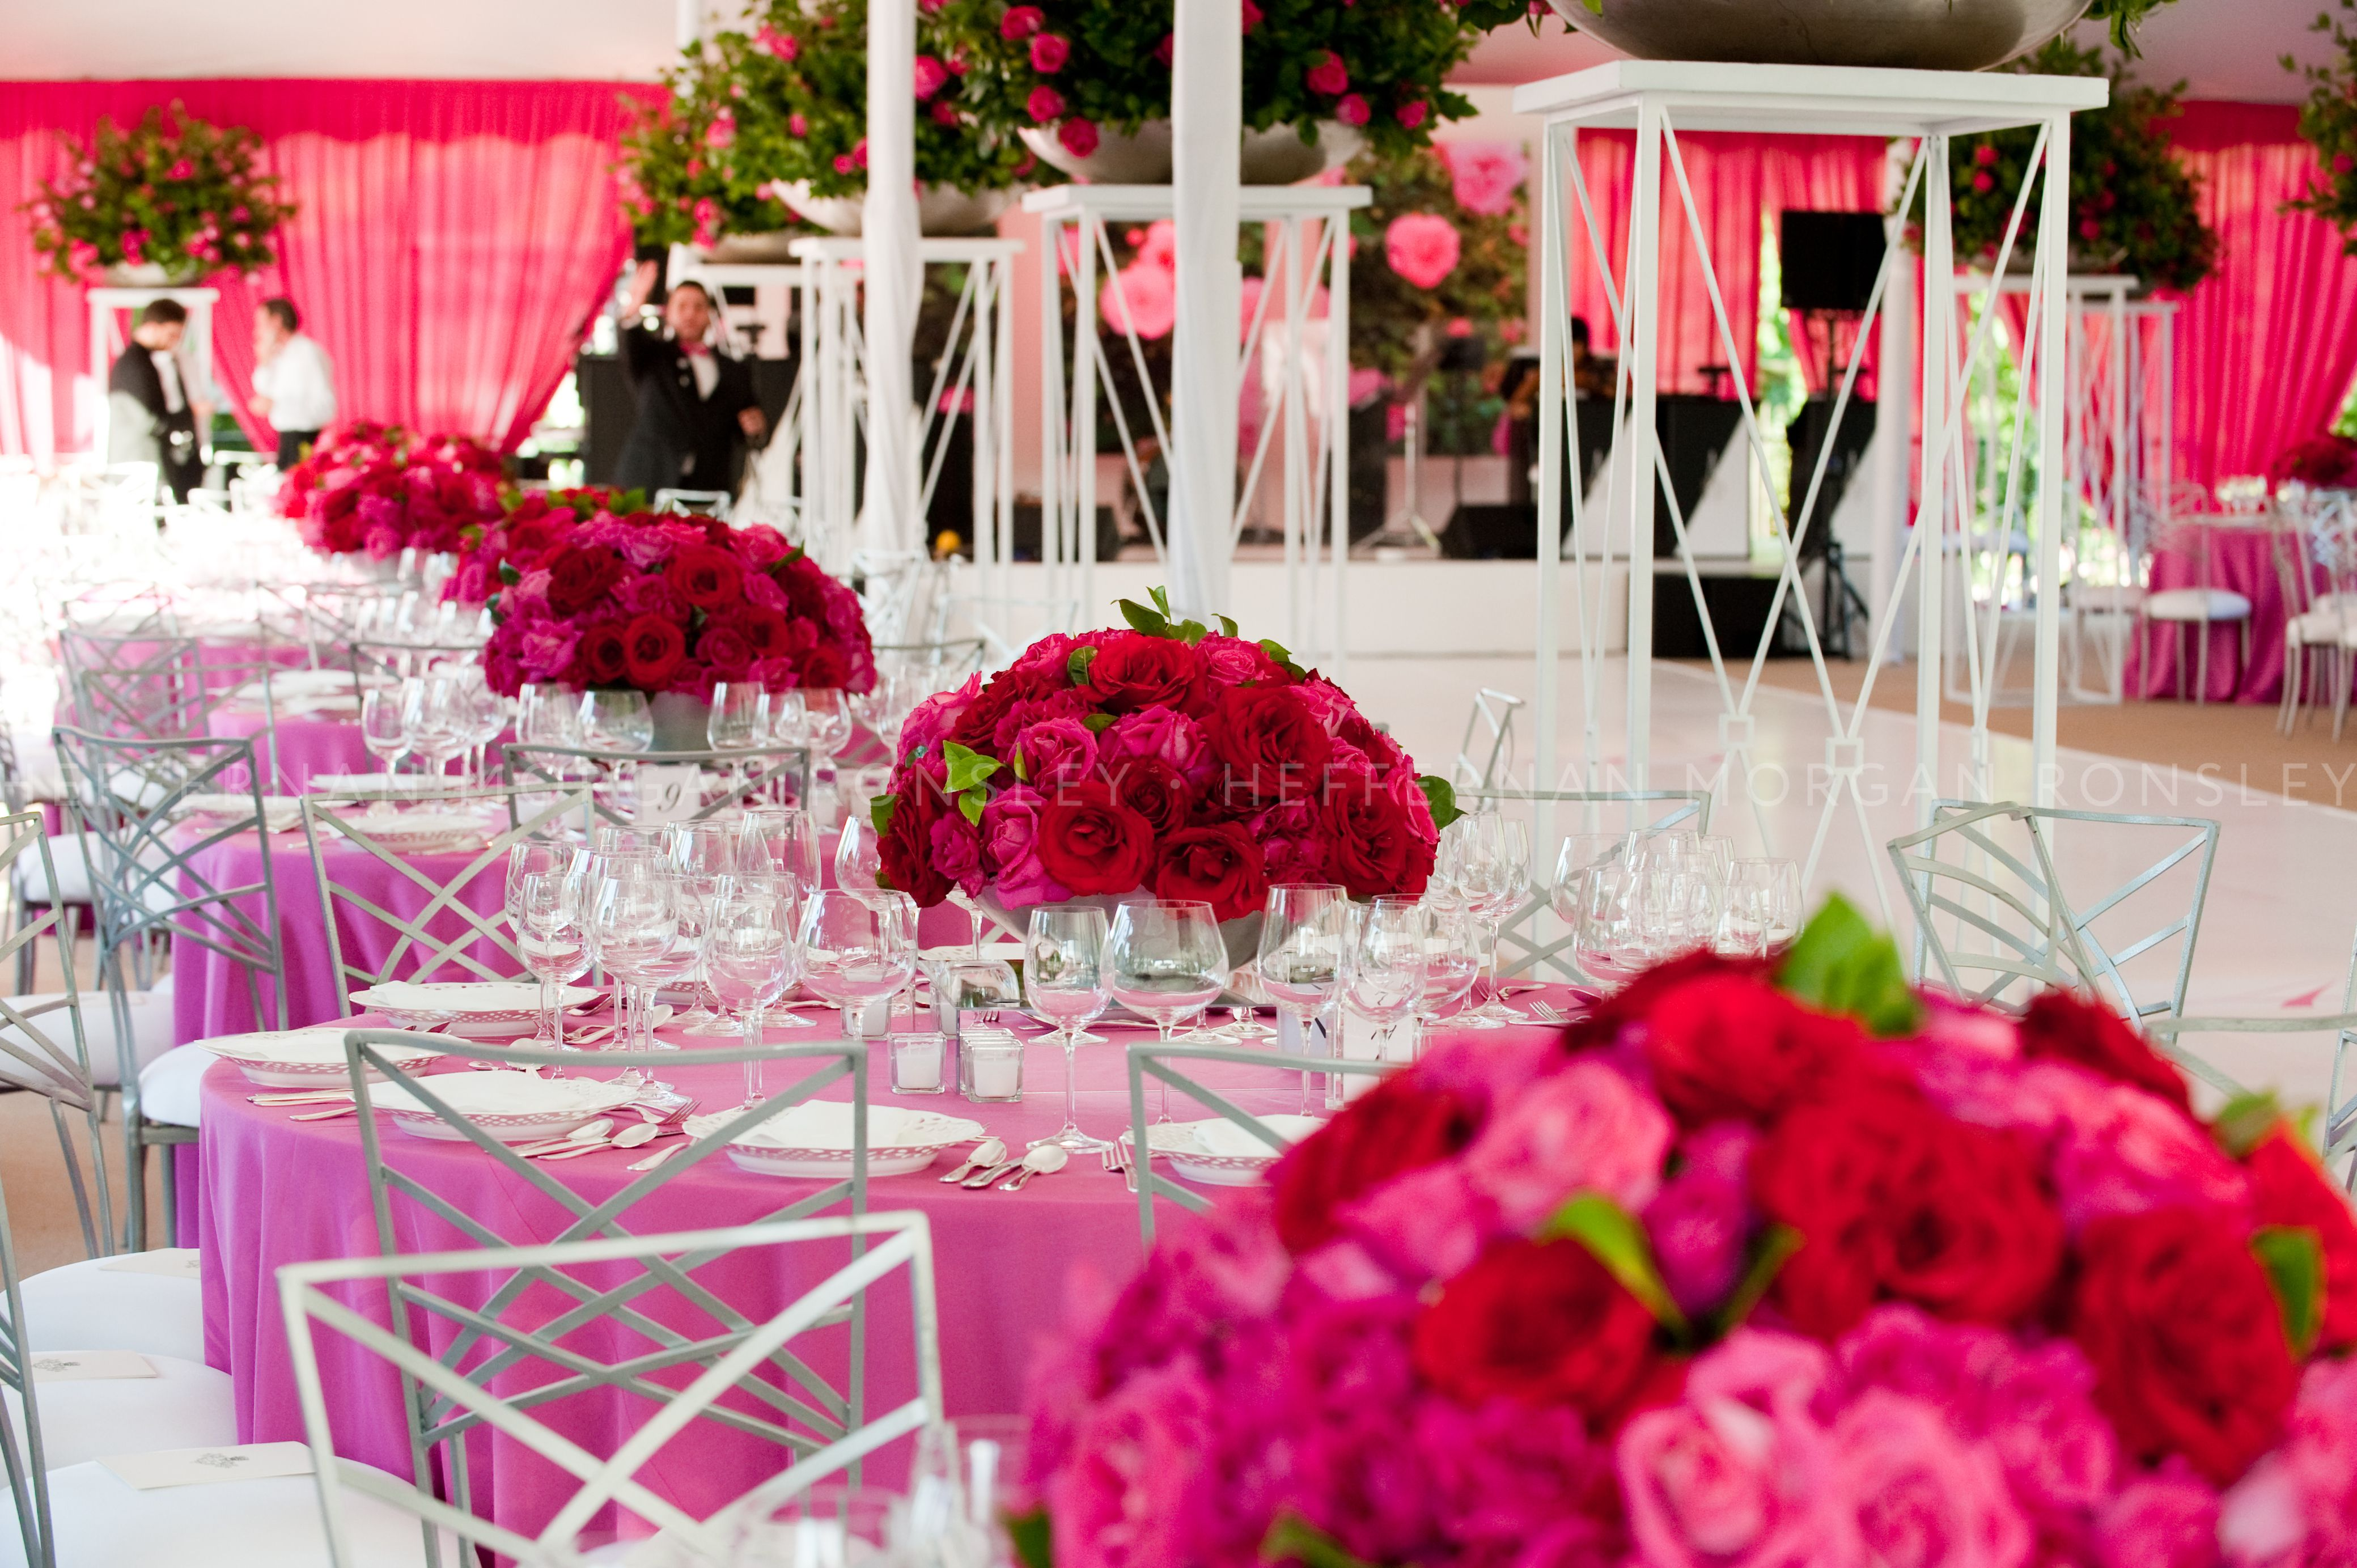 Nigerian wedding decoration images  Floral and Event Design  Chicago wedding Strictly weddings and